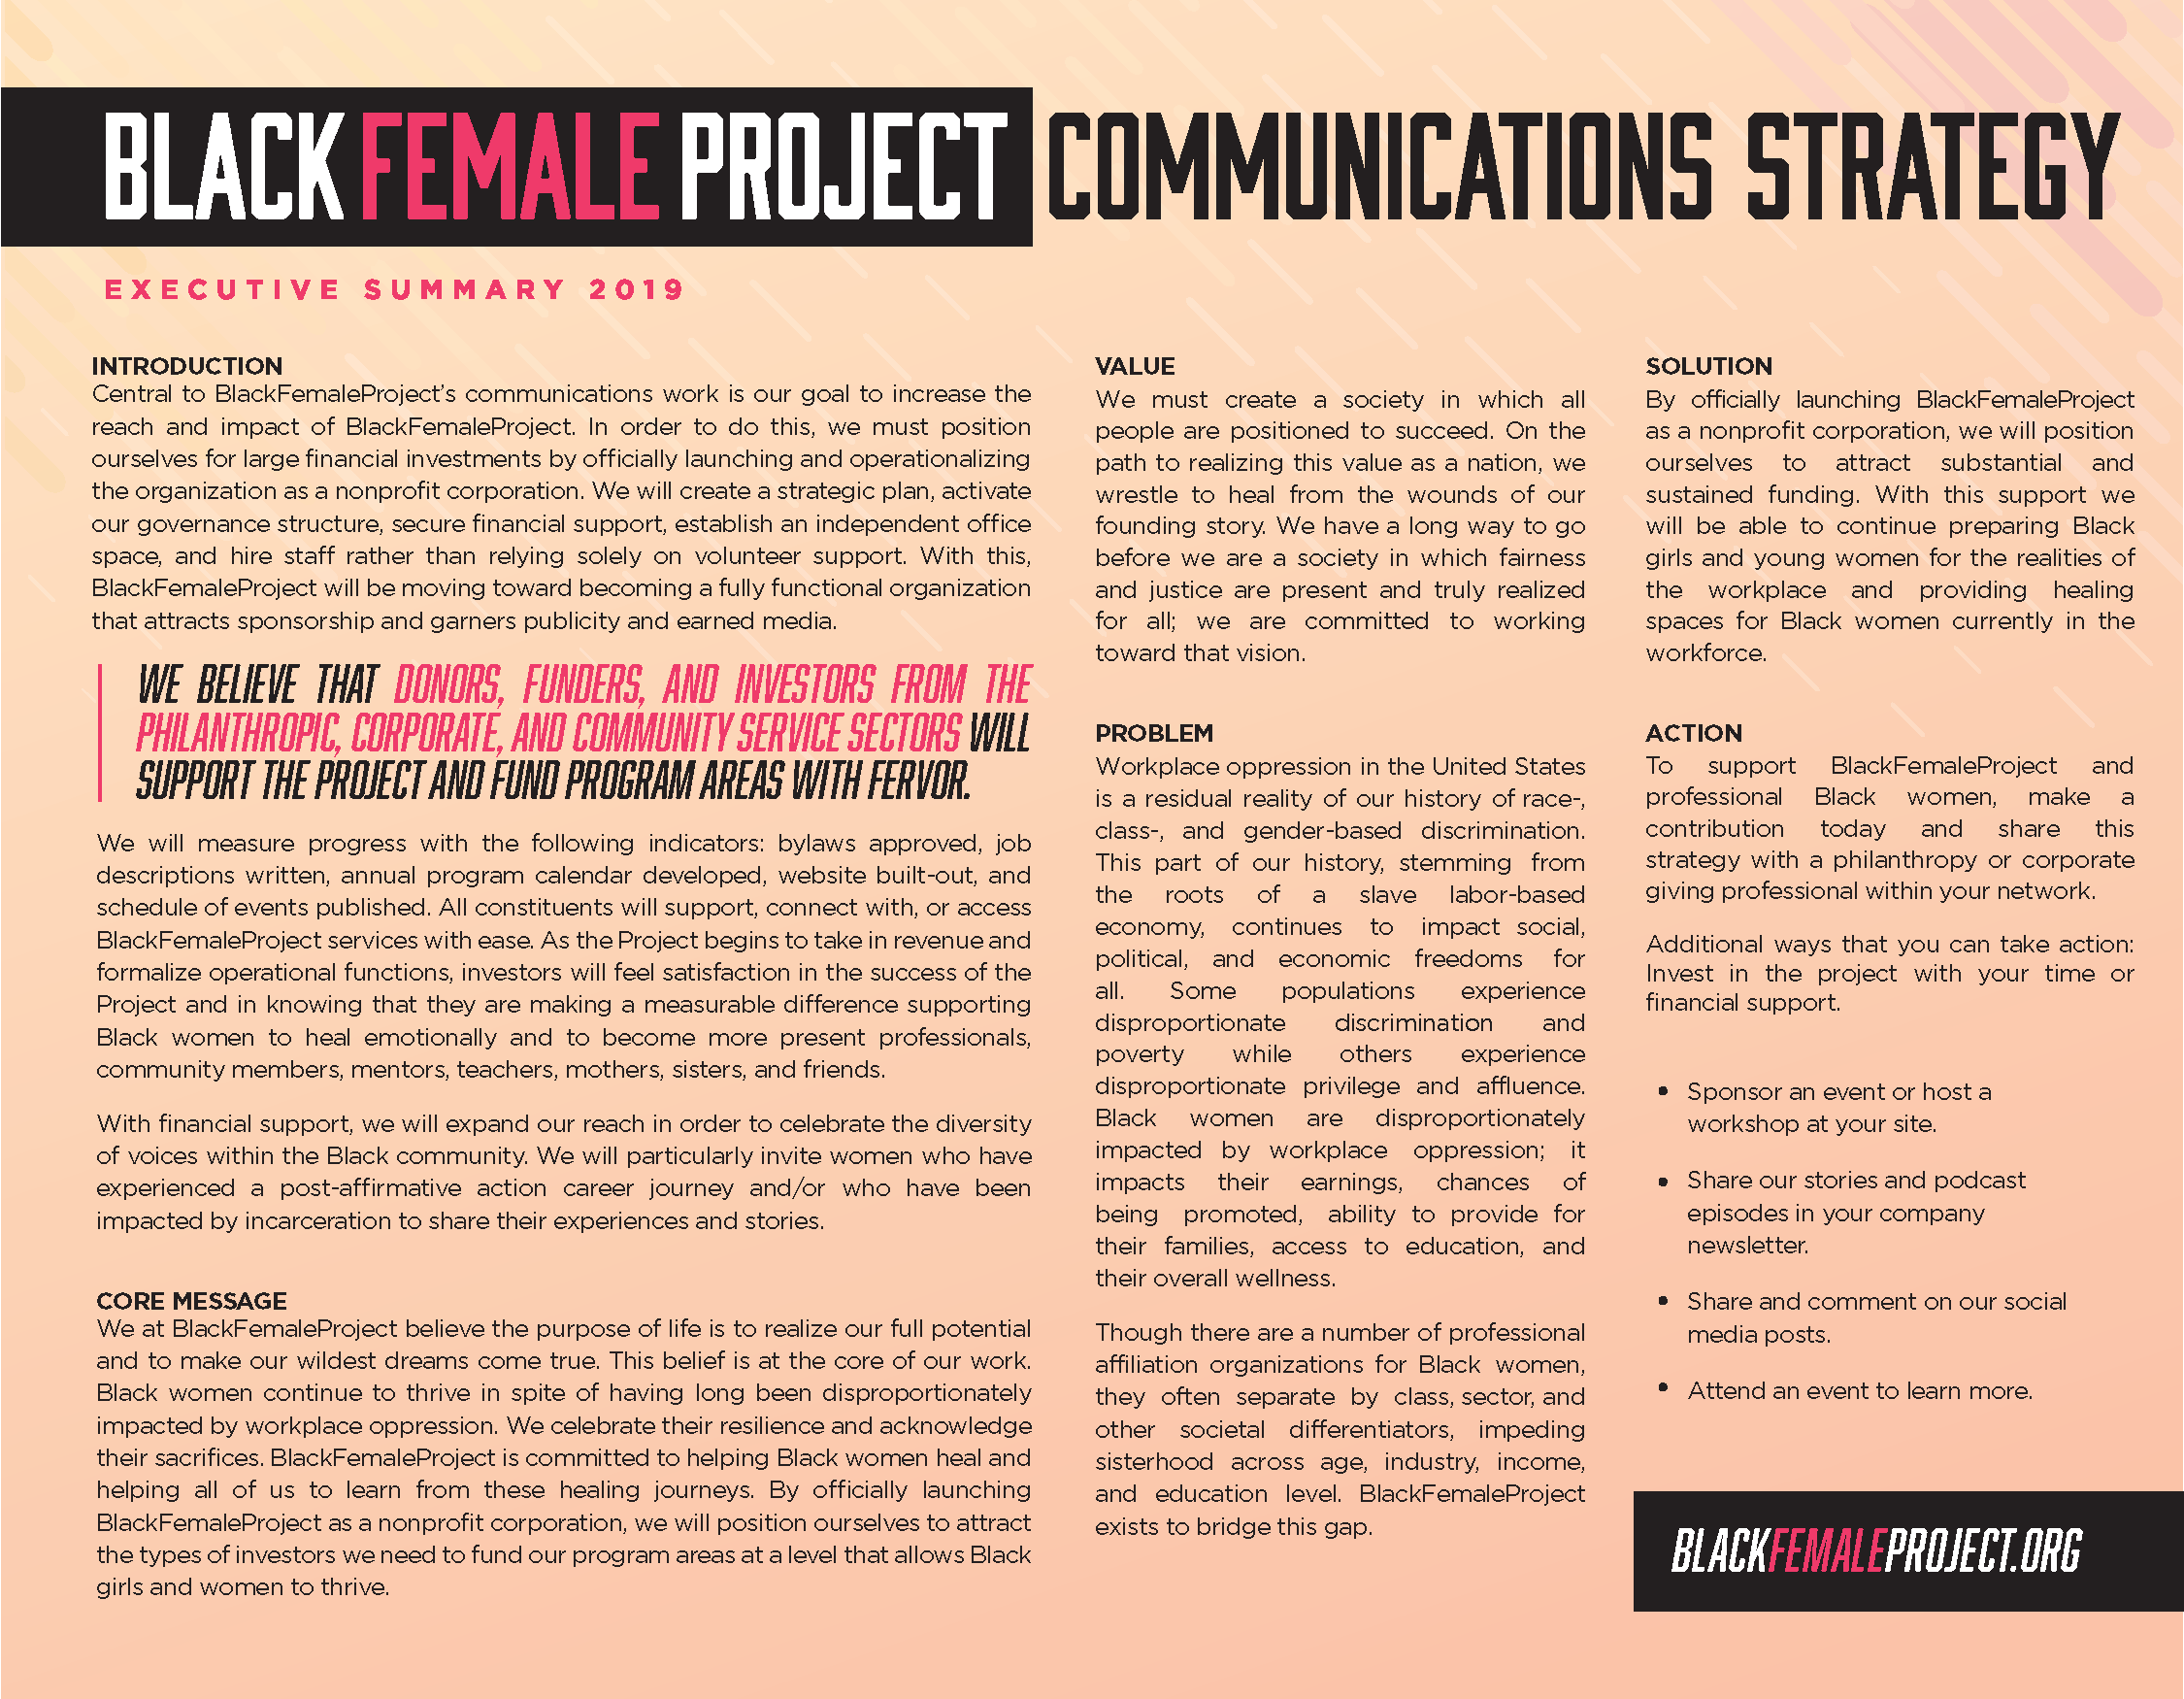 BlackFemaleProject-CommStrat-ExecSummary-2019_Page_2.png